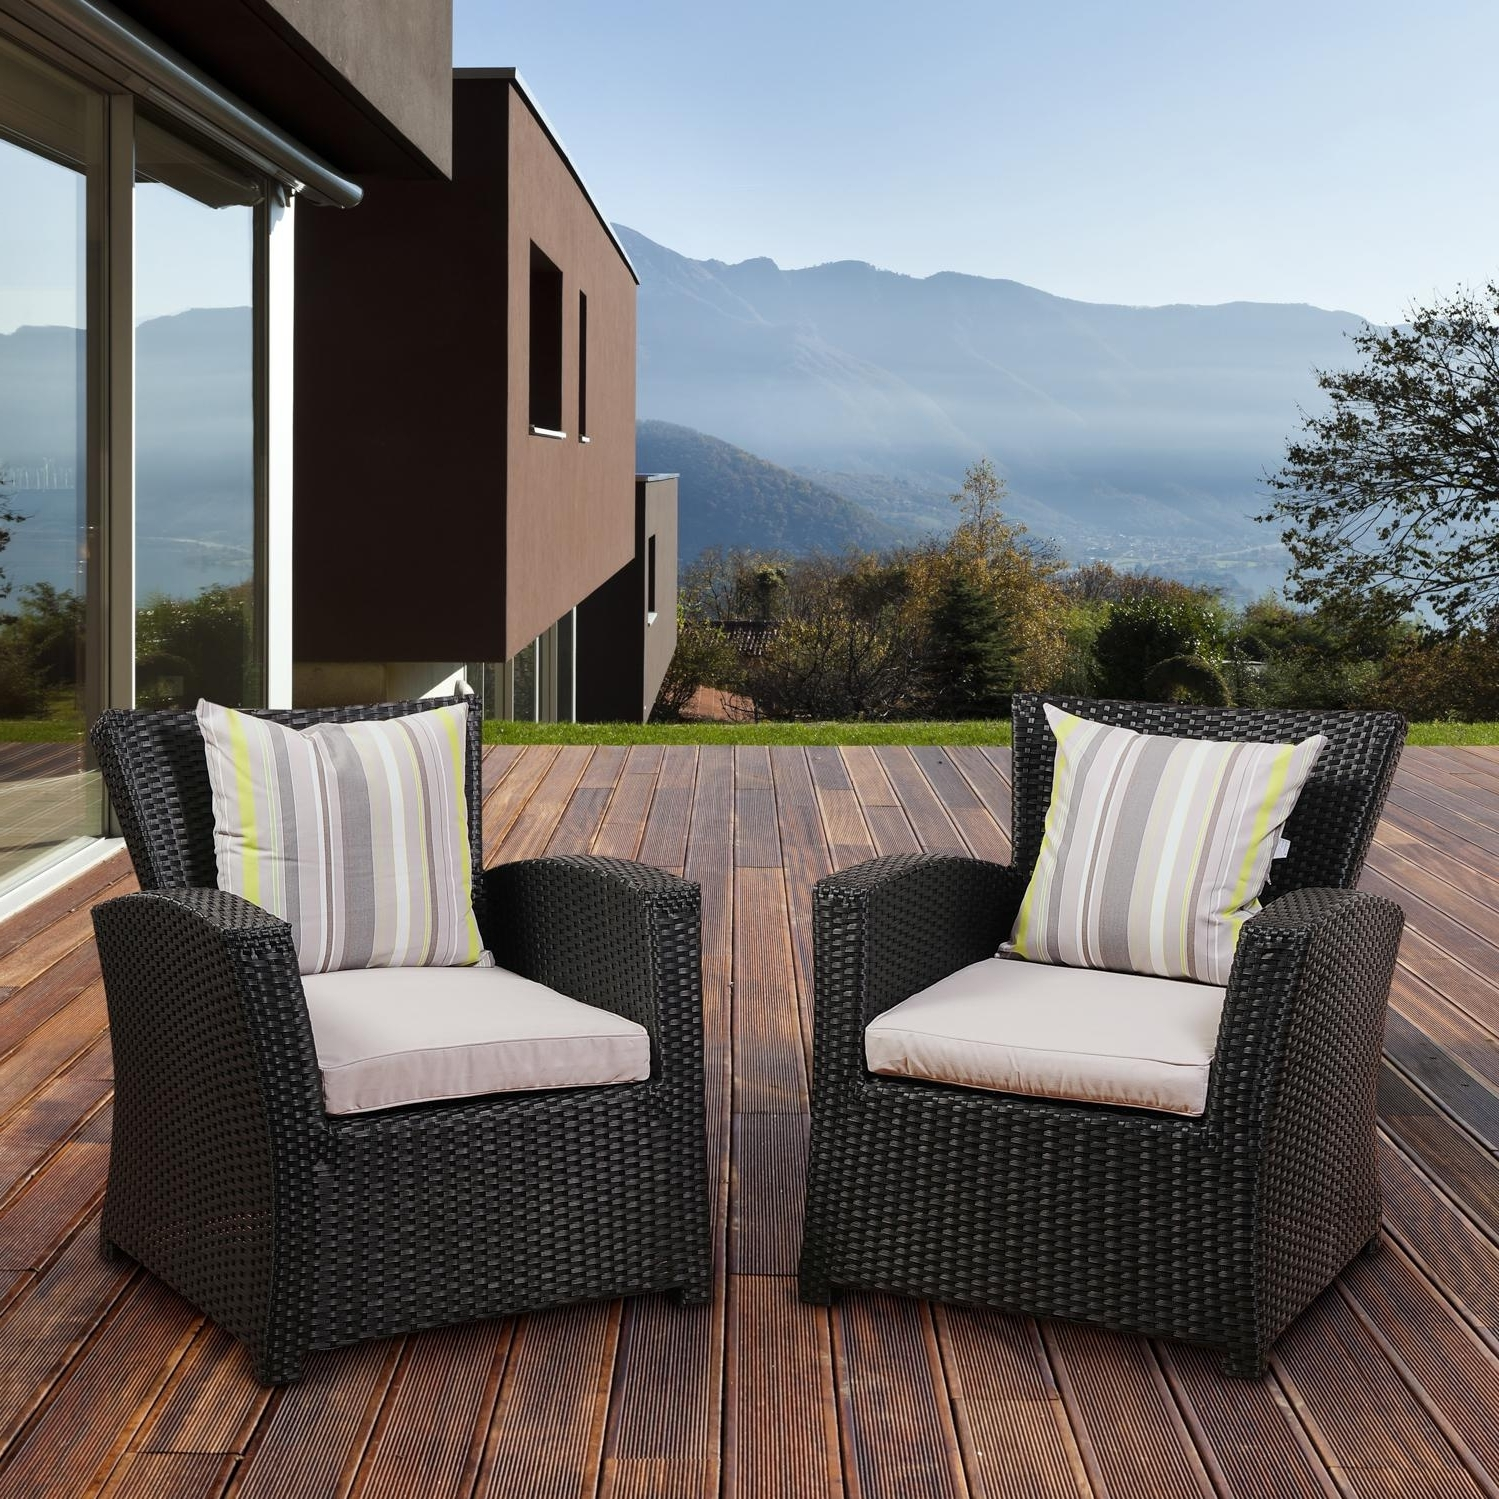 Newest Atlantic Staffordshire 4 Person Resin Wicker Patio Conversation Set Within Black Patio Conversation Sets (Gallery 8 of 20)